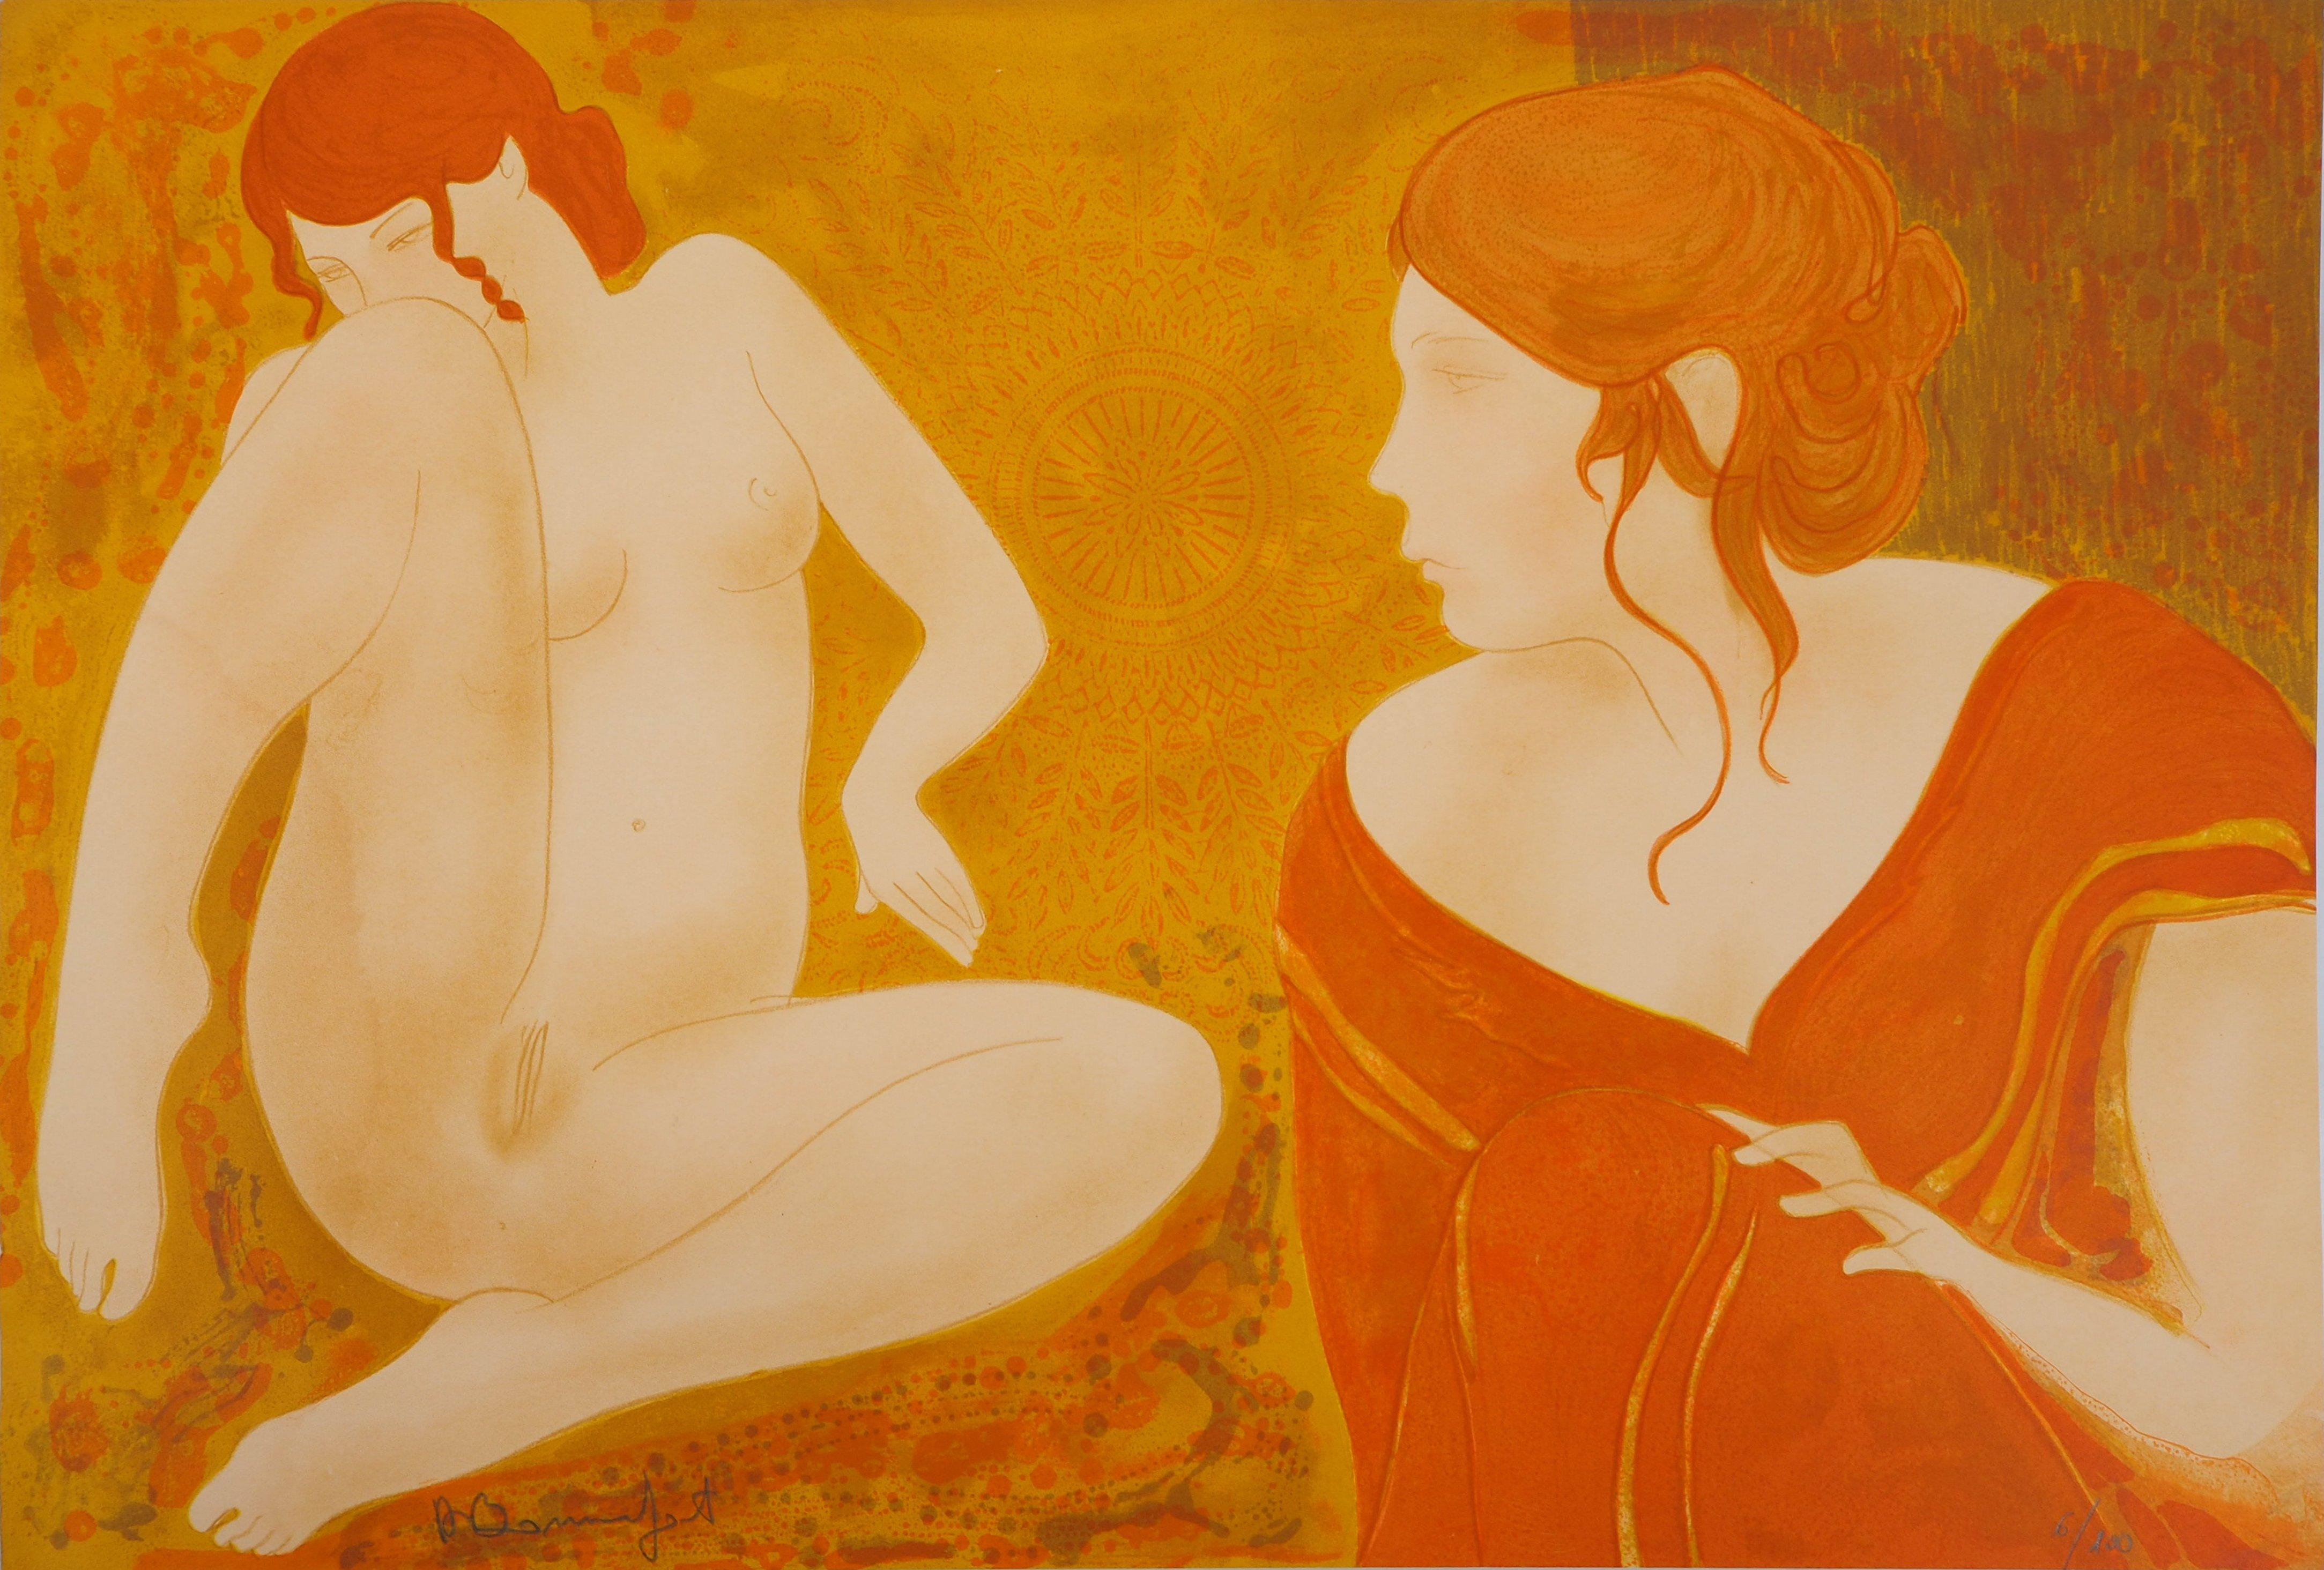 Dreaming Nude - Original lithograph, Handsigned and Numbered /100